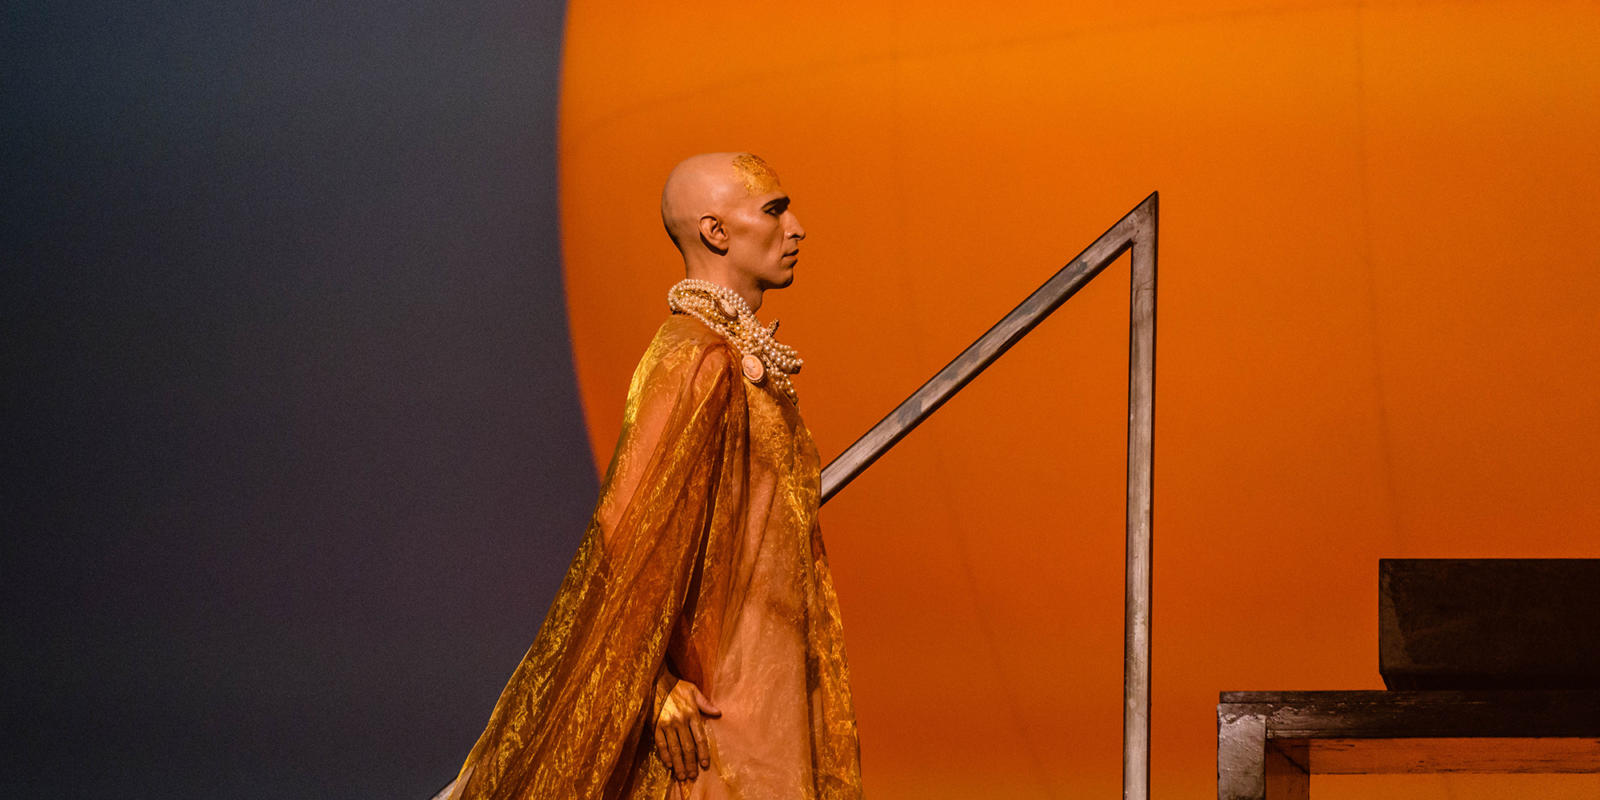 Anthony Roth Costanzo in the title role of Akhaten wearing a velvet orange cape in front of the bright orange sun